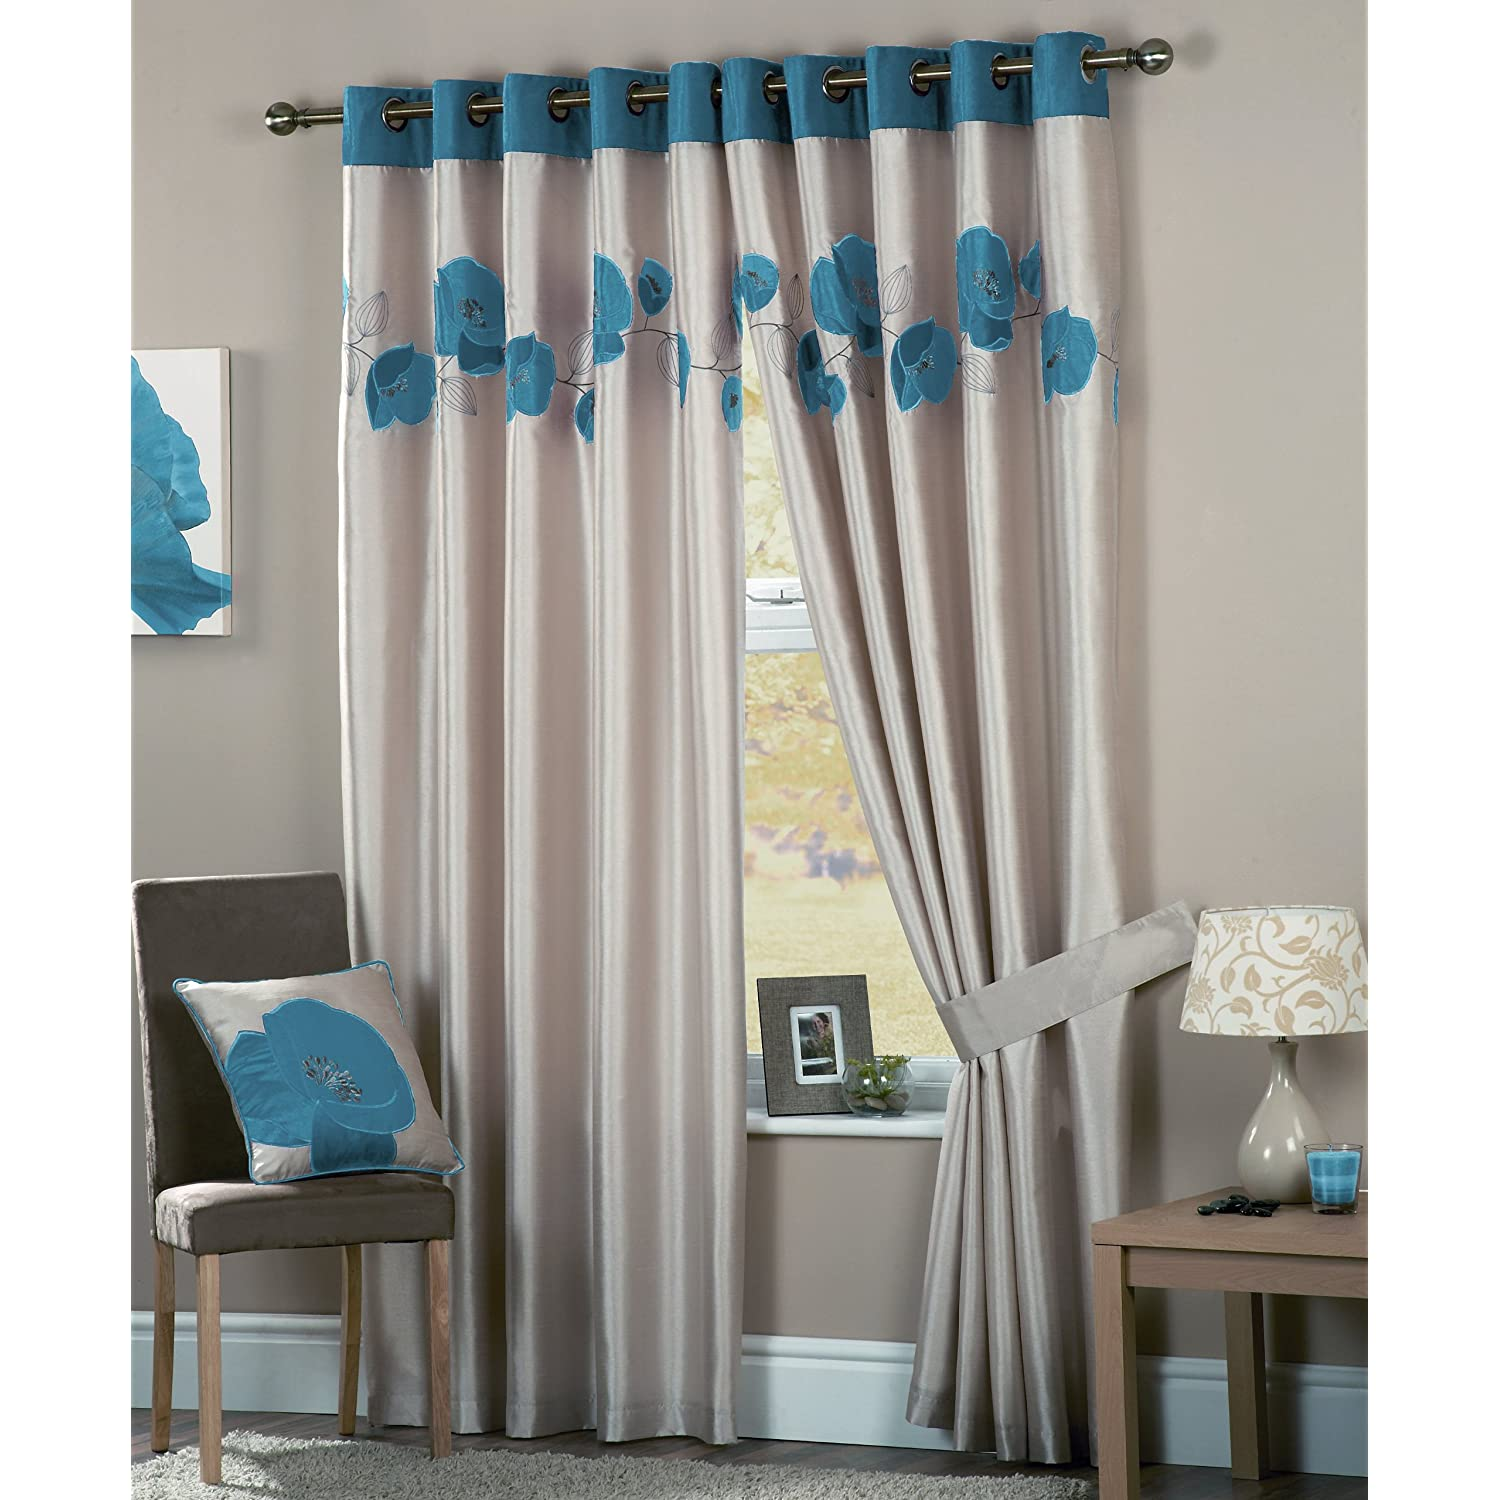 Eyelet Bedroom Curtains DANIELLE EYELET LINED TEAL BEDROOM LIVING ROOM CURTAINS 66X90cm